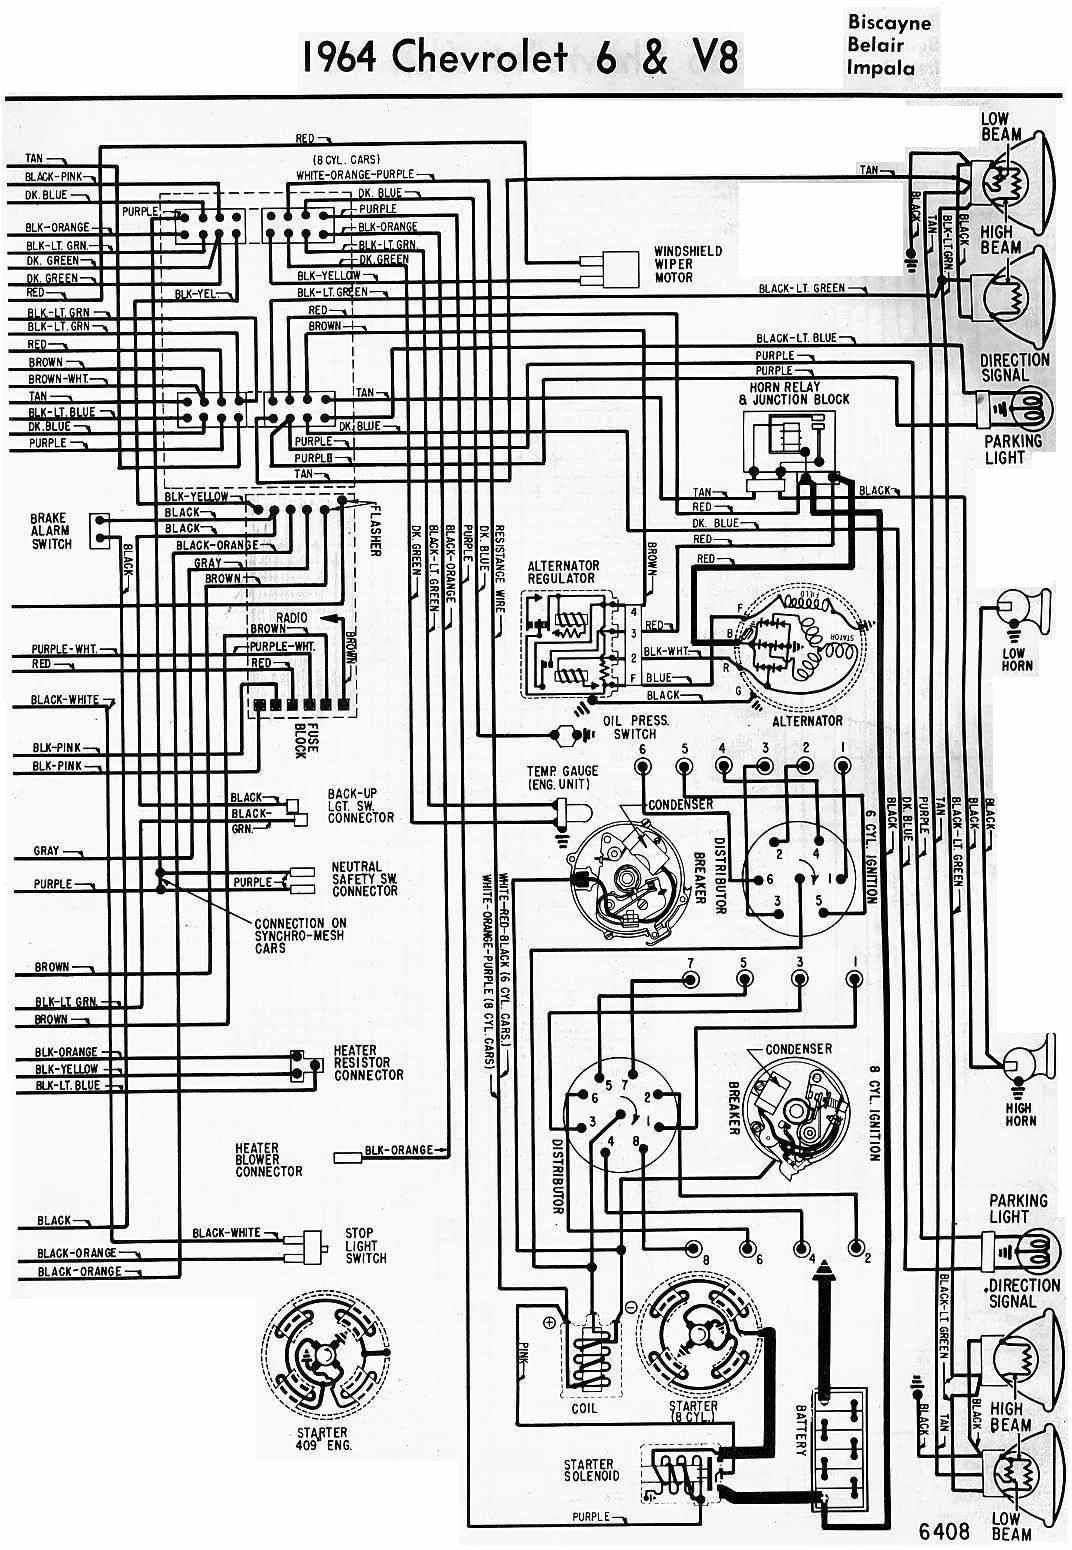 1963 impala engine wiring diagram free download wiring diagram today 1963 impala engine wiring diagram free [ 1072 x 1550 Pixel ]